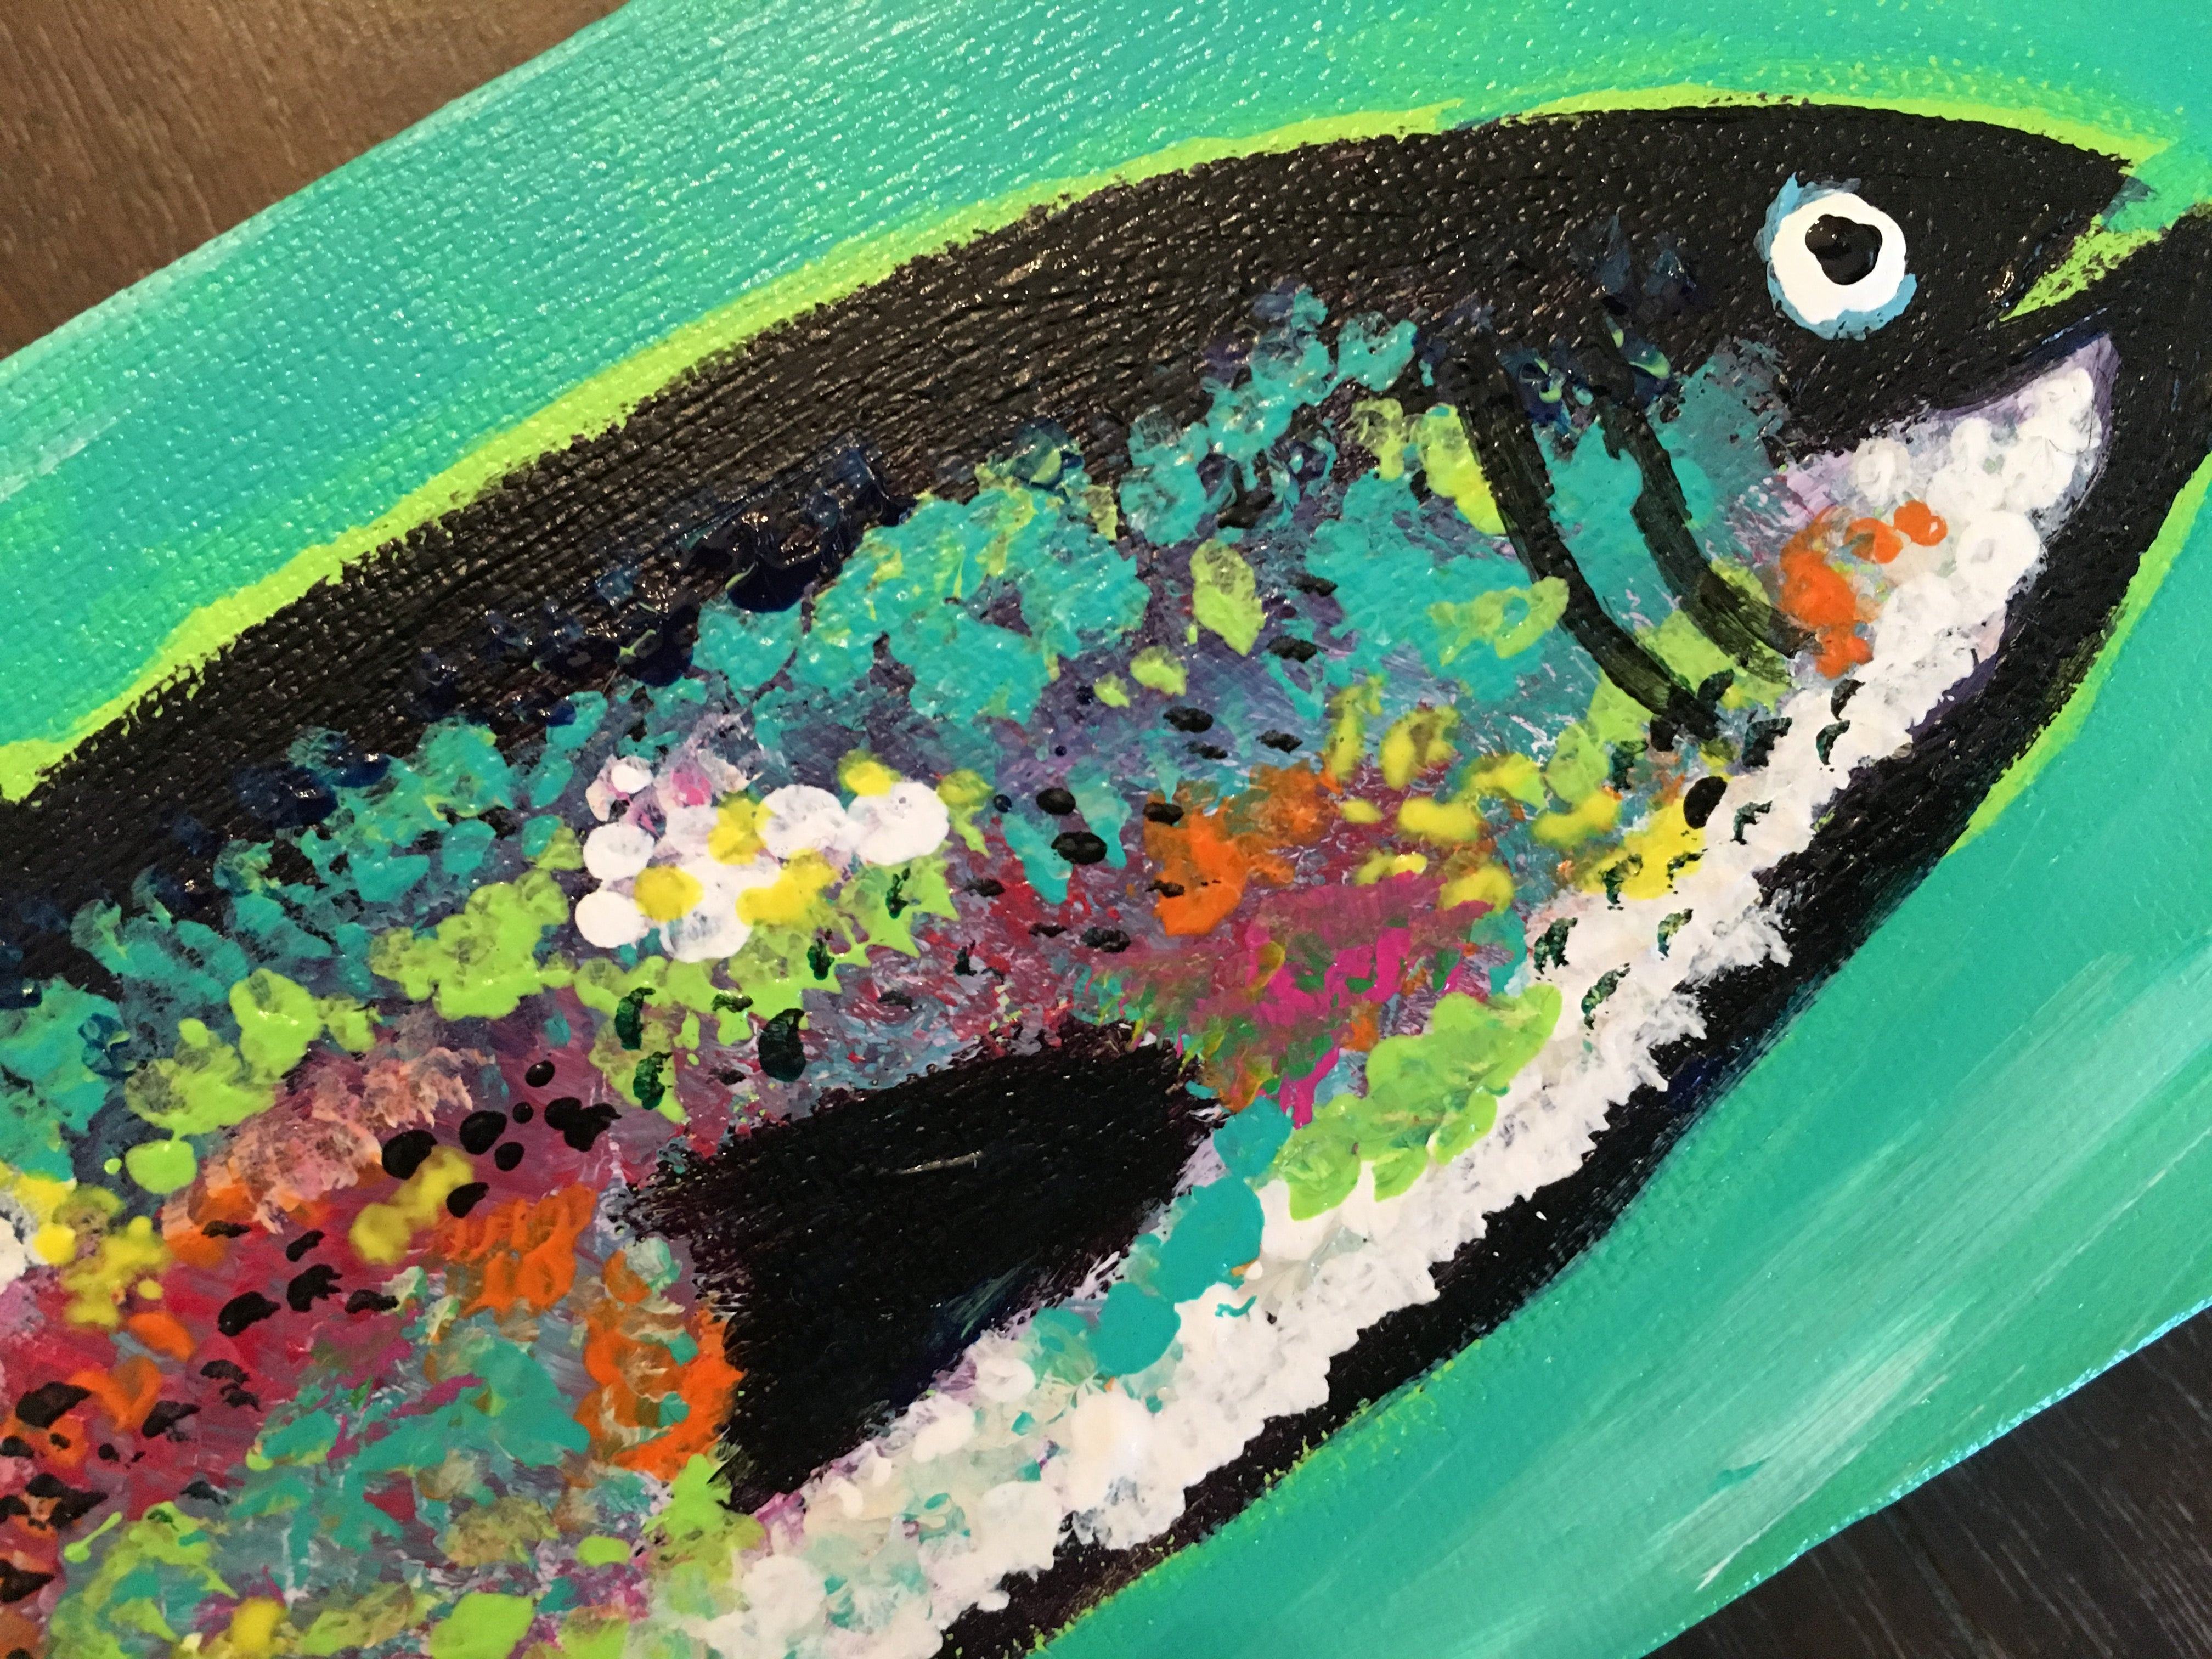 Rainbow Trout #8, acrylic painting, size: 4x12